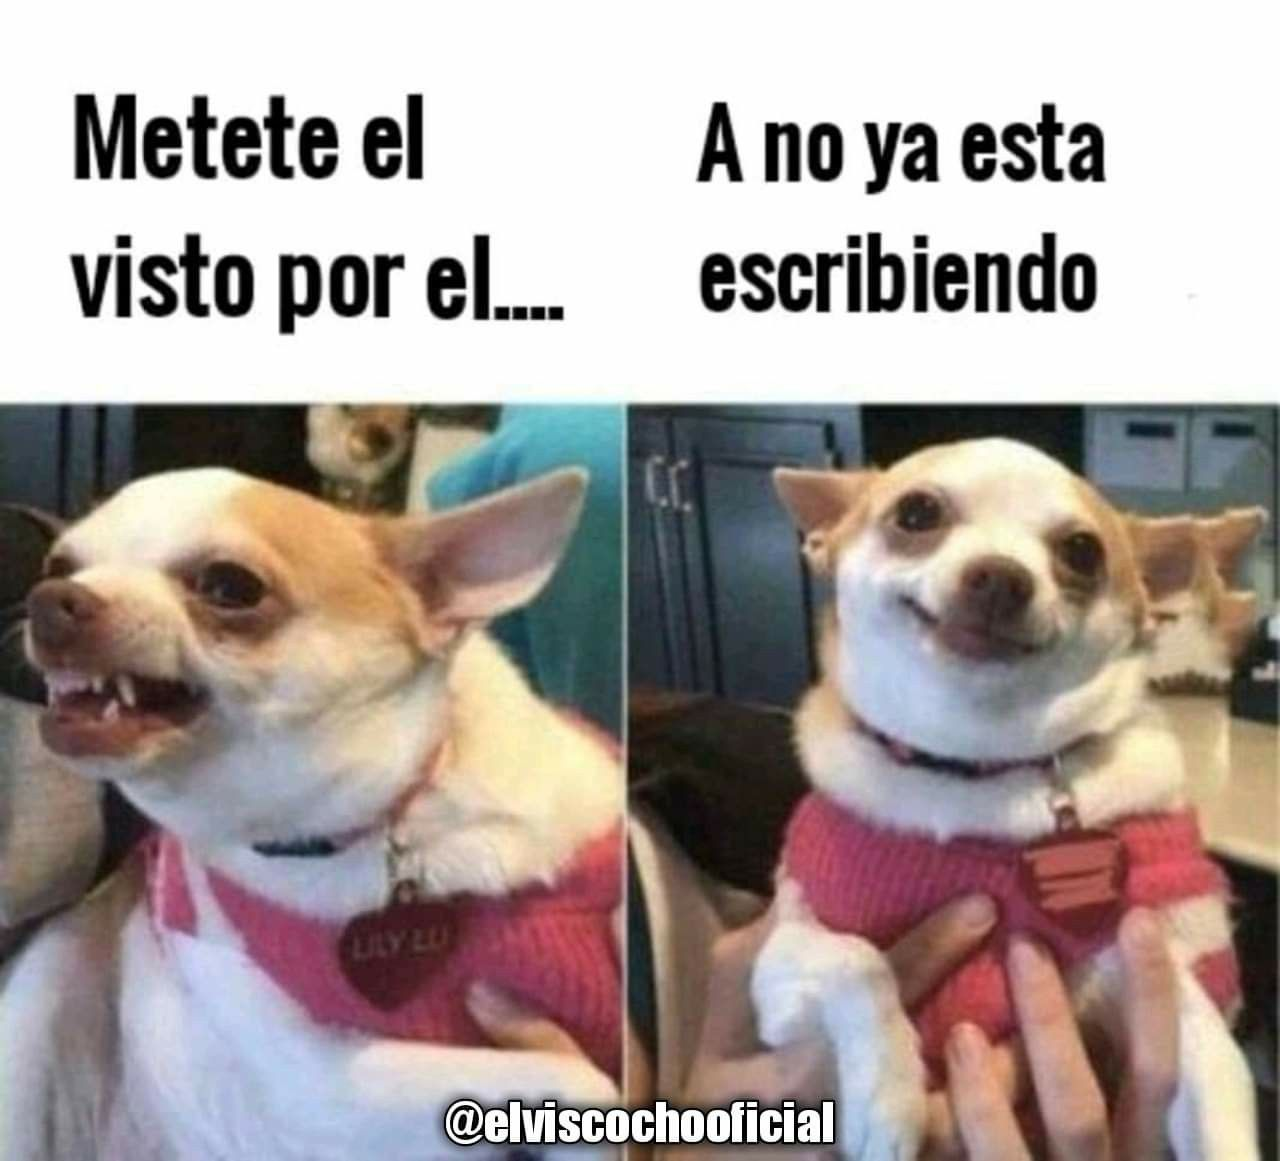 Pin By Dyazz On Mensajes Funny Memes Chihuahua Funny Animals